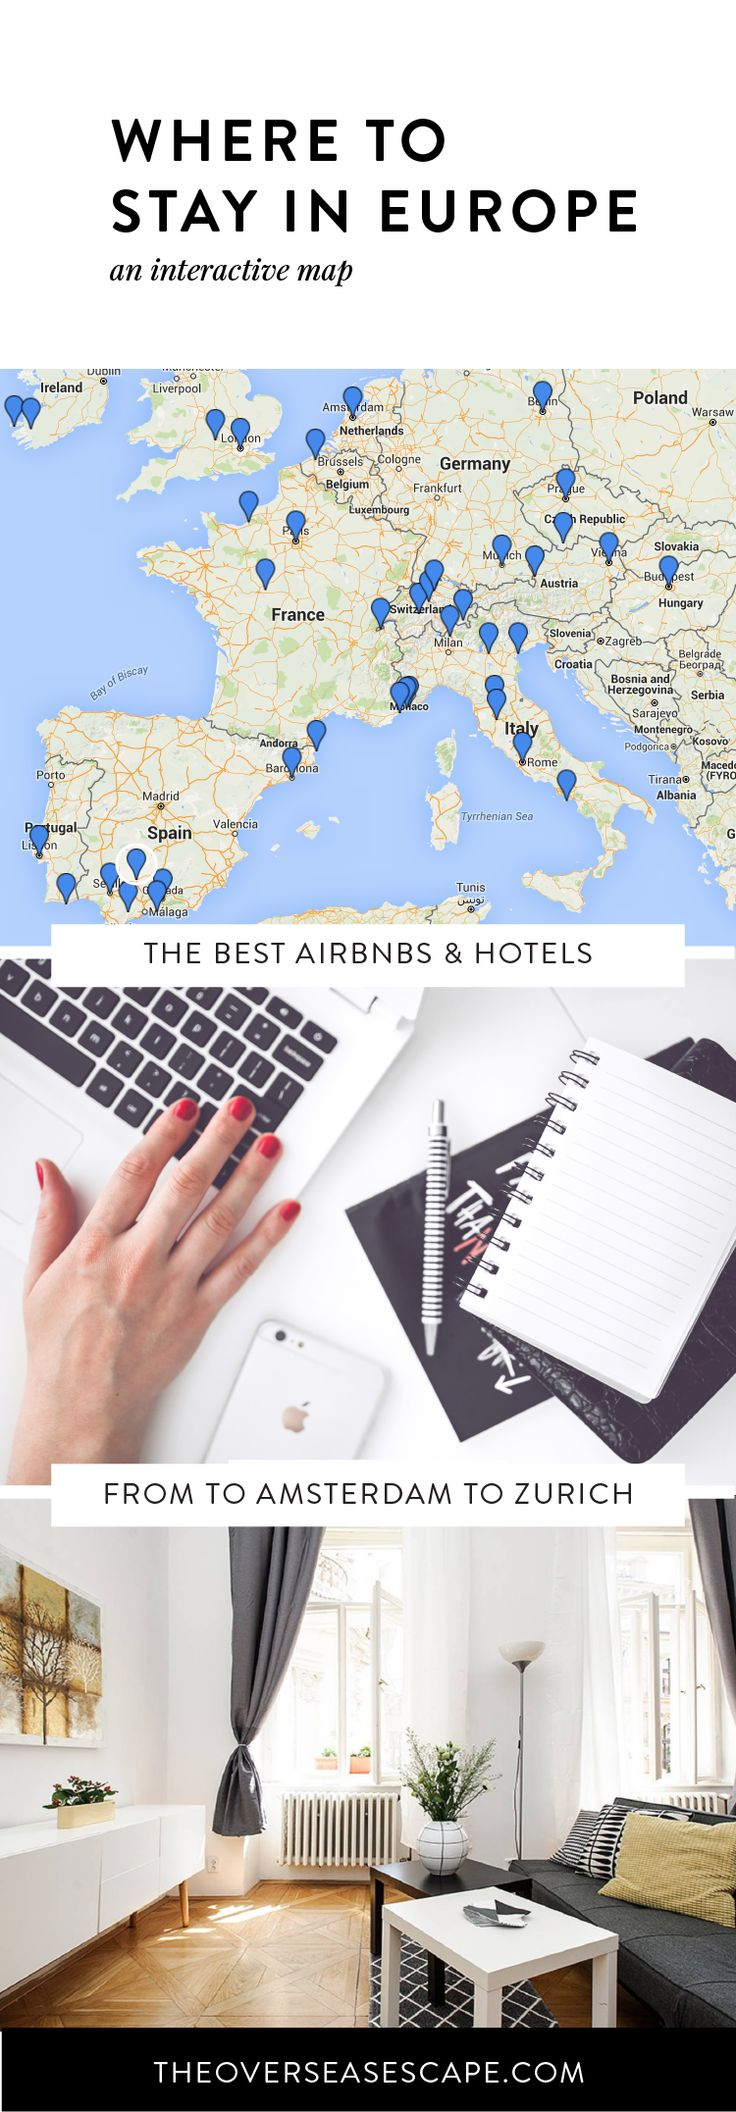 The best Airbnbs and hotels in Europe PLUS tons of fun Euro-trip ideas for honeymooners, friend groups, backpackers, families & more!                                                                                                                                                                                 More